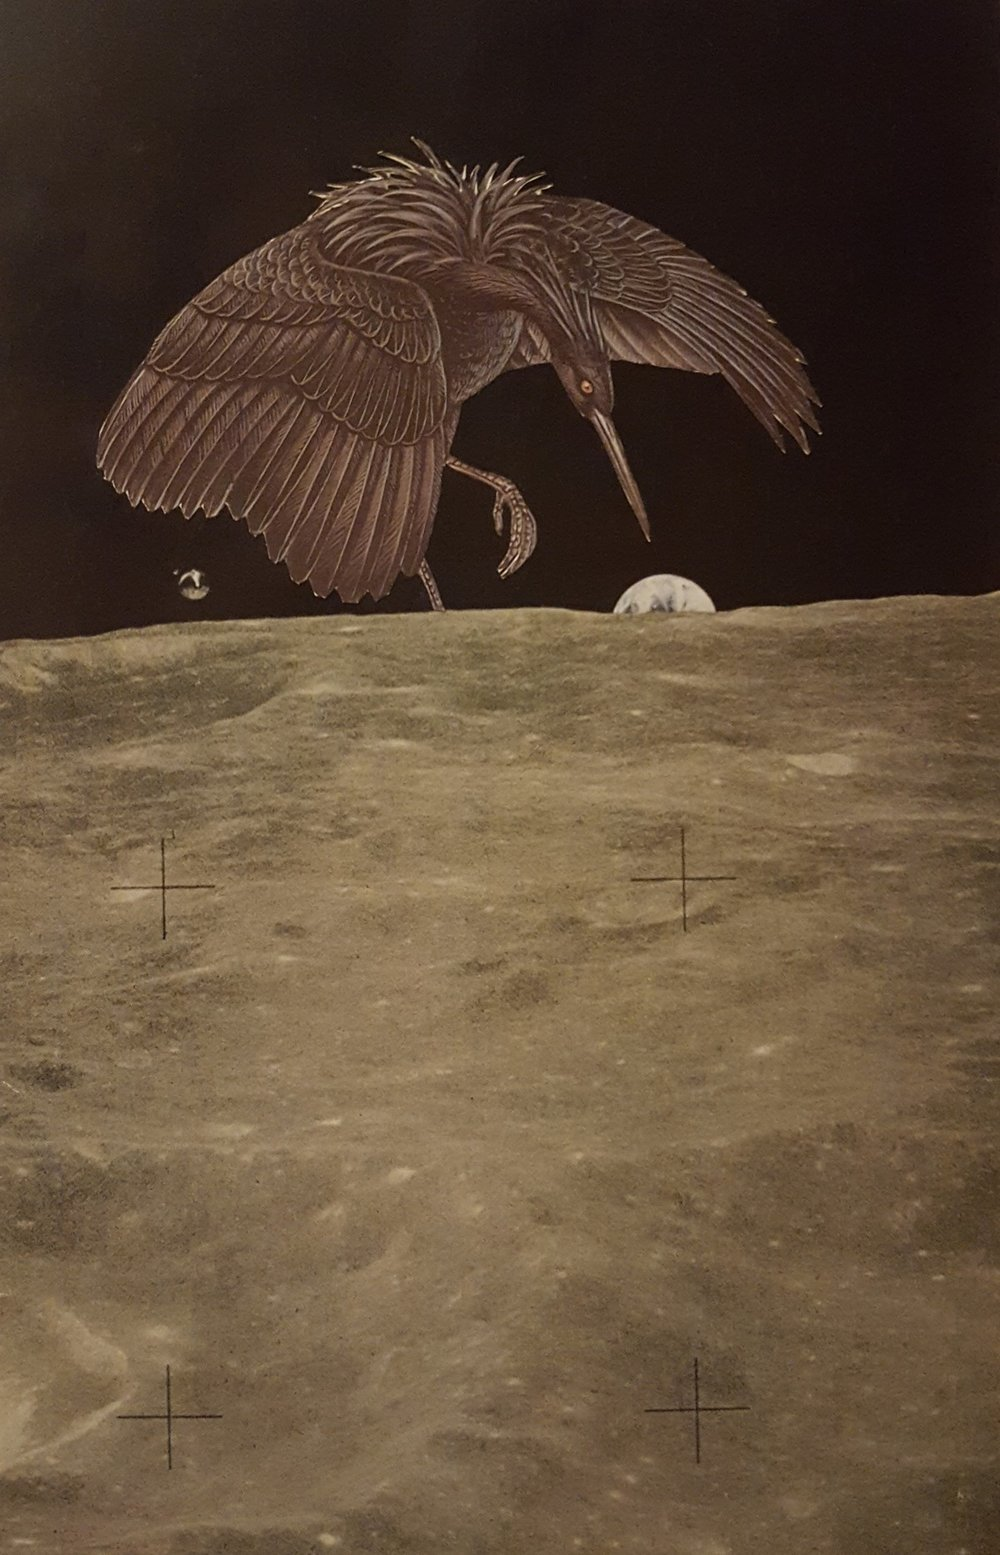 collage-bird-moon-earth.jpg